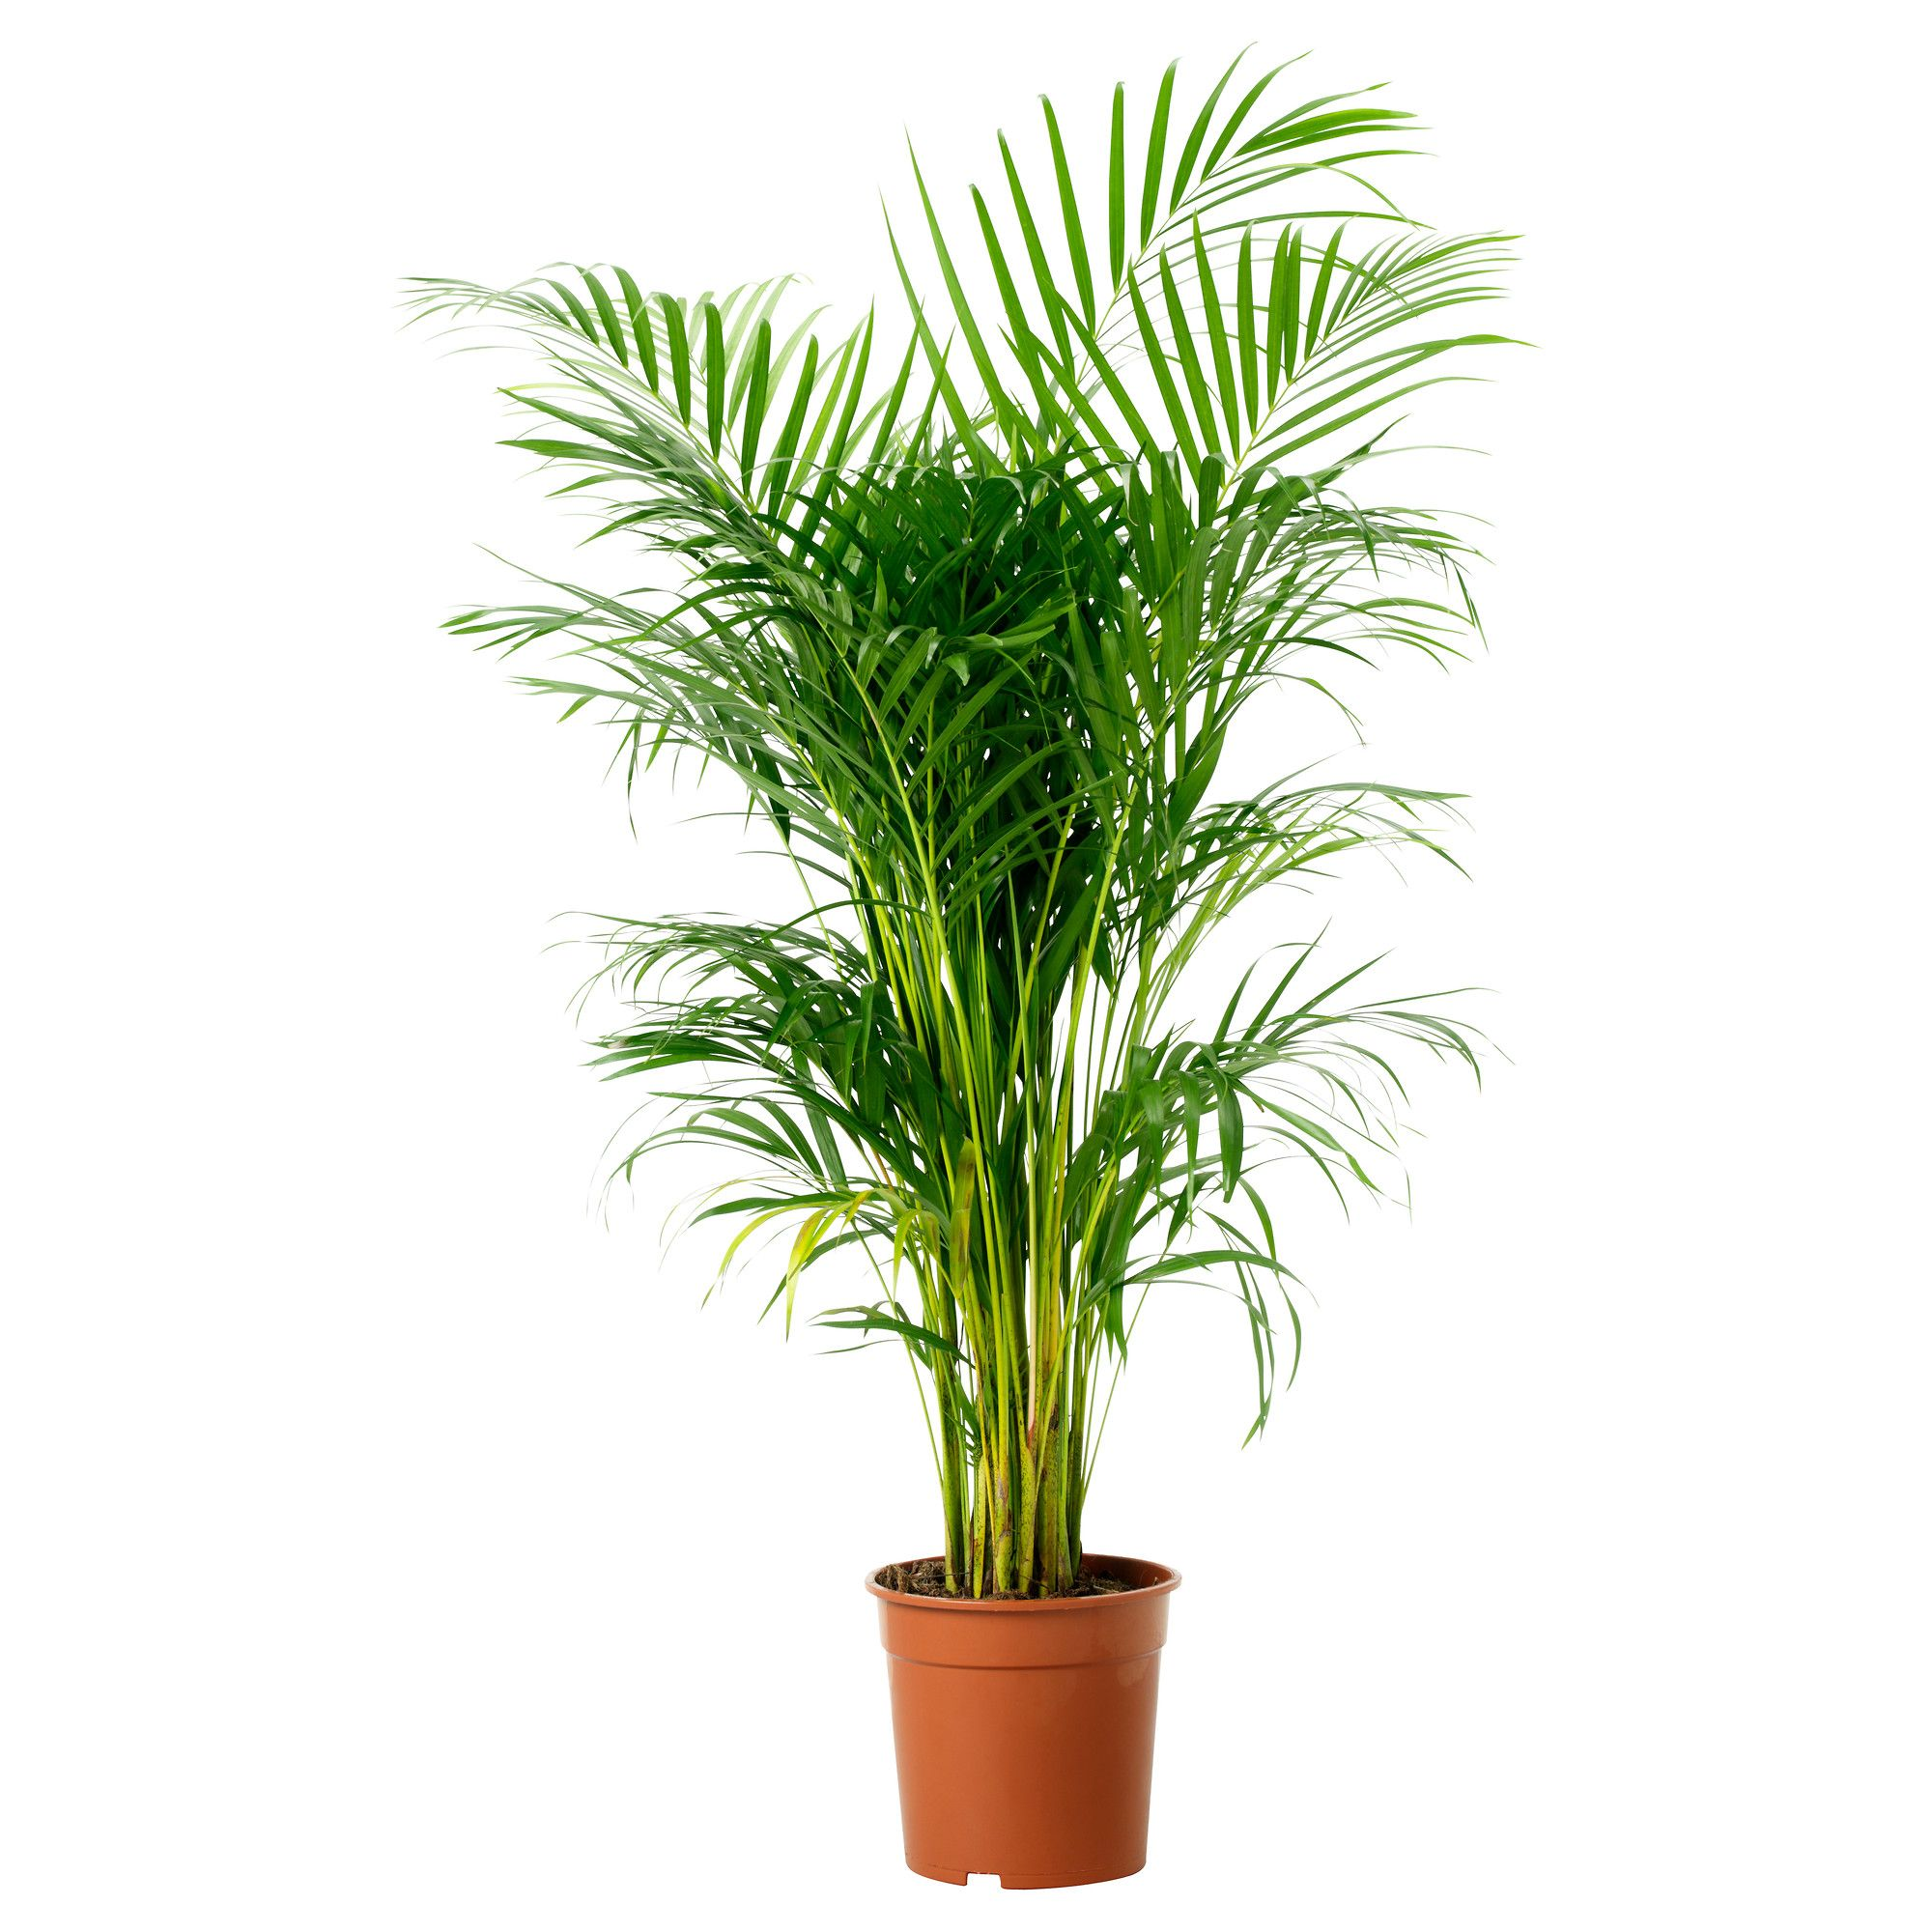 Ikea chrysalidocarpus lutescens plante en pot Plantes decoratives exterieur